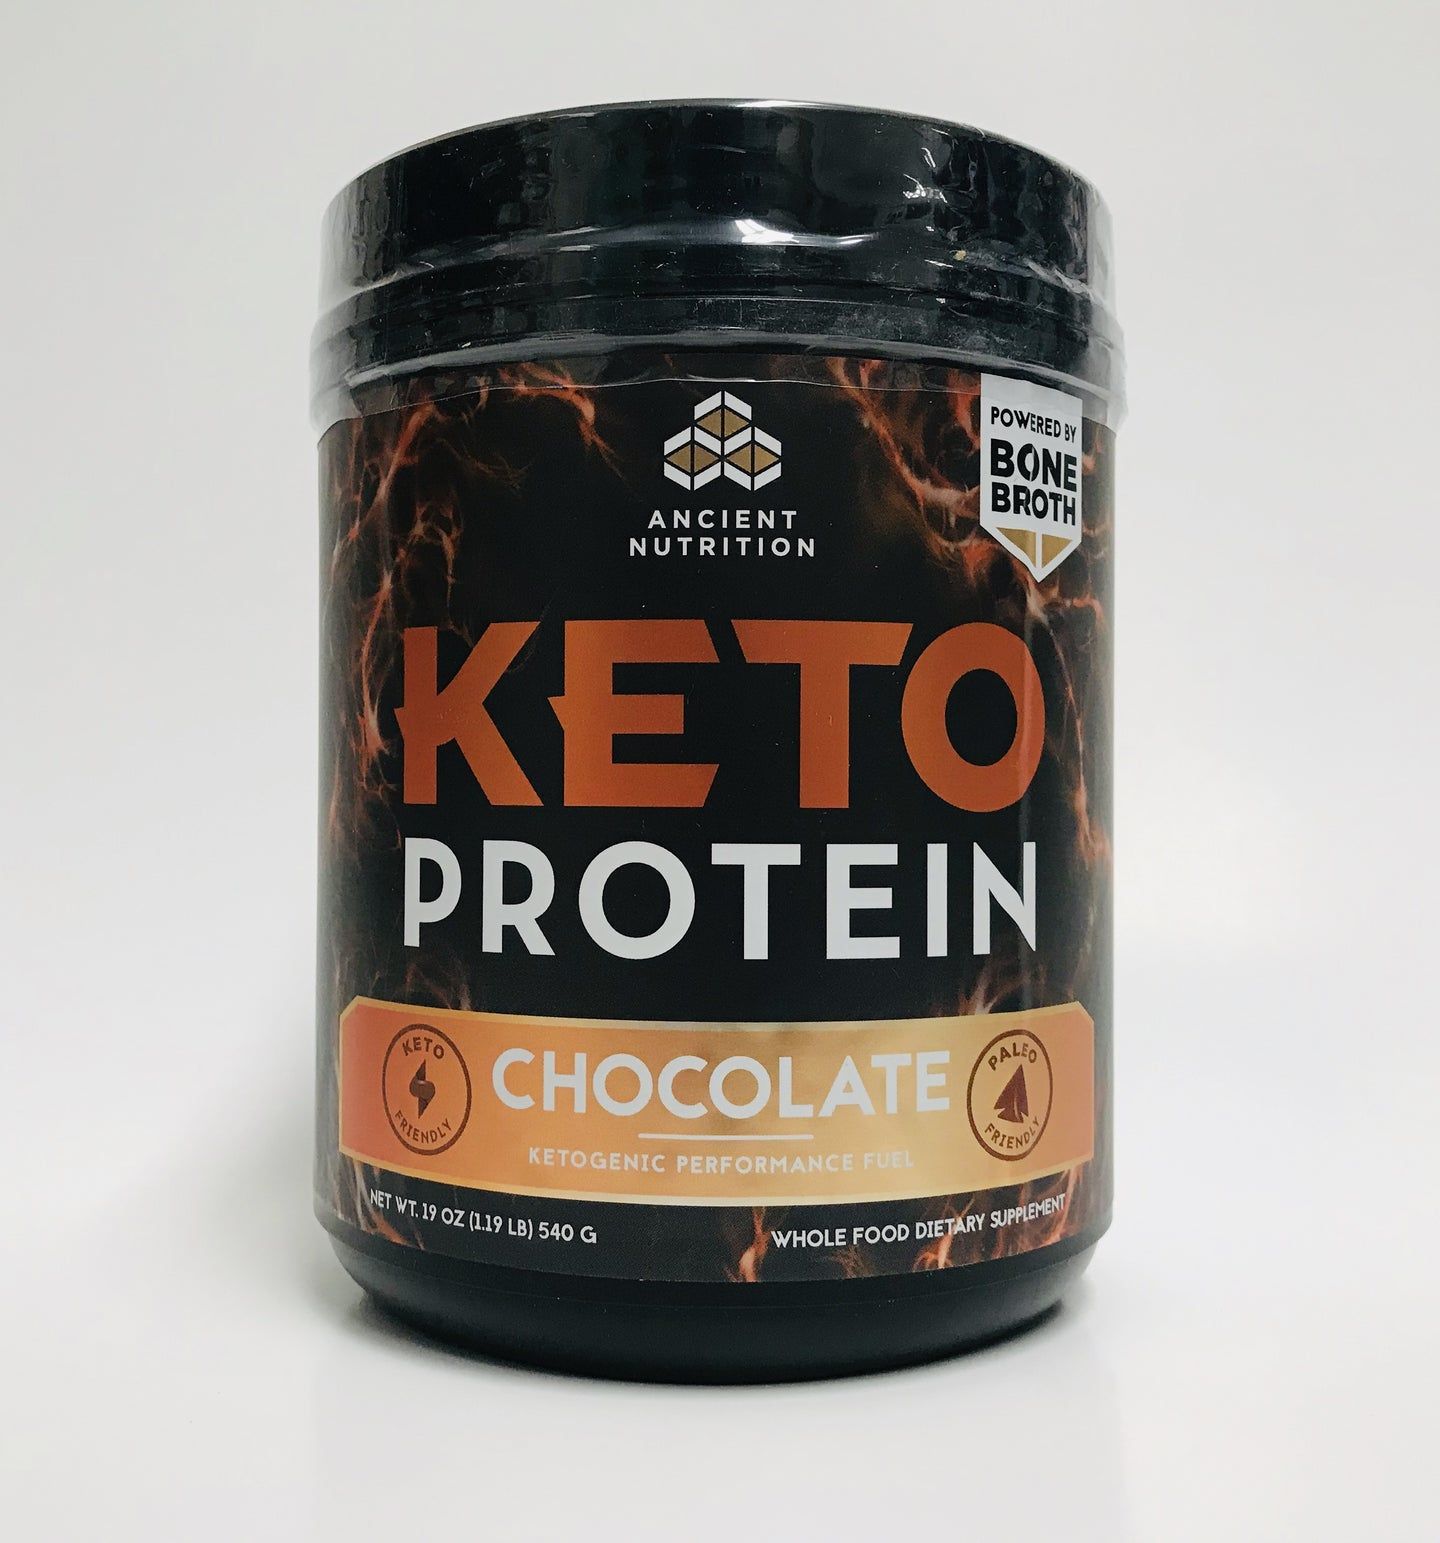 Ancient Nutrition Keto Feast Bone Broth Chocolate